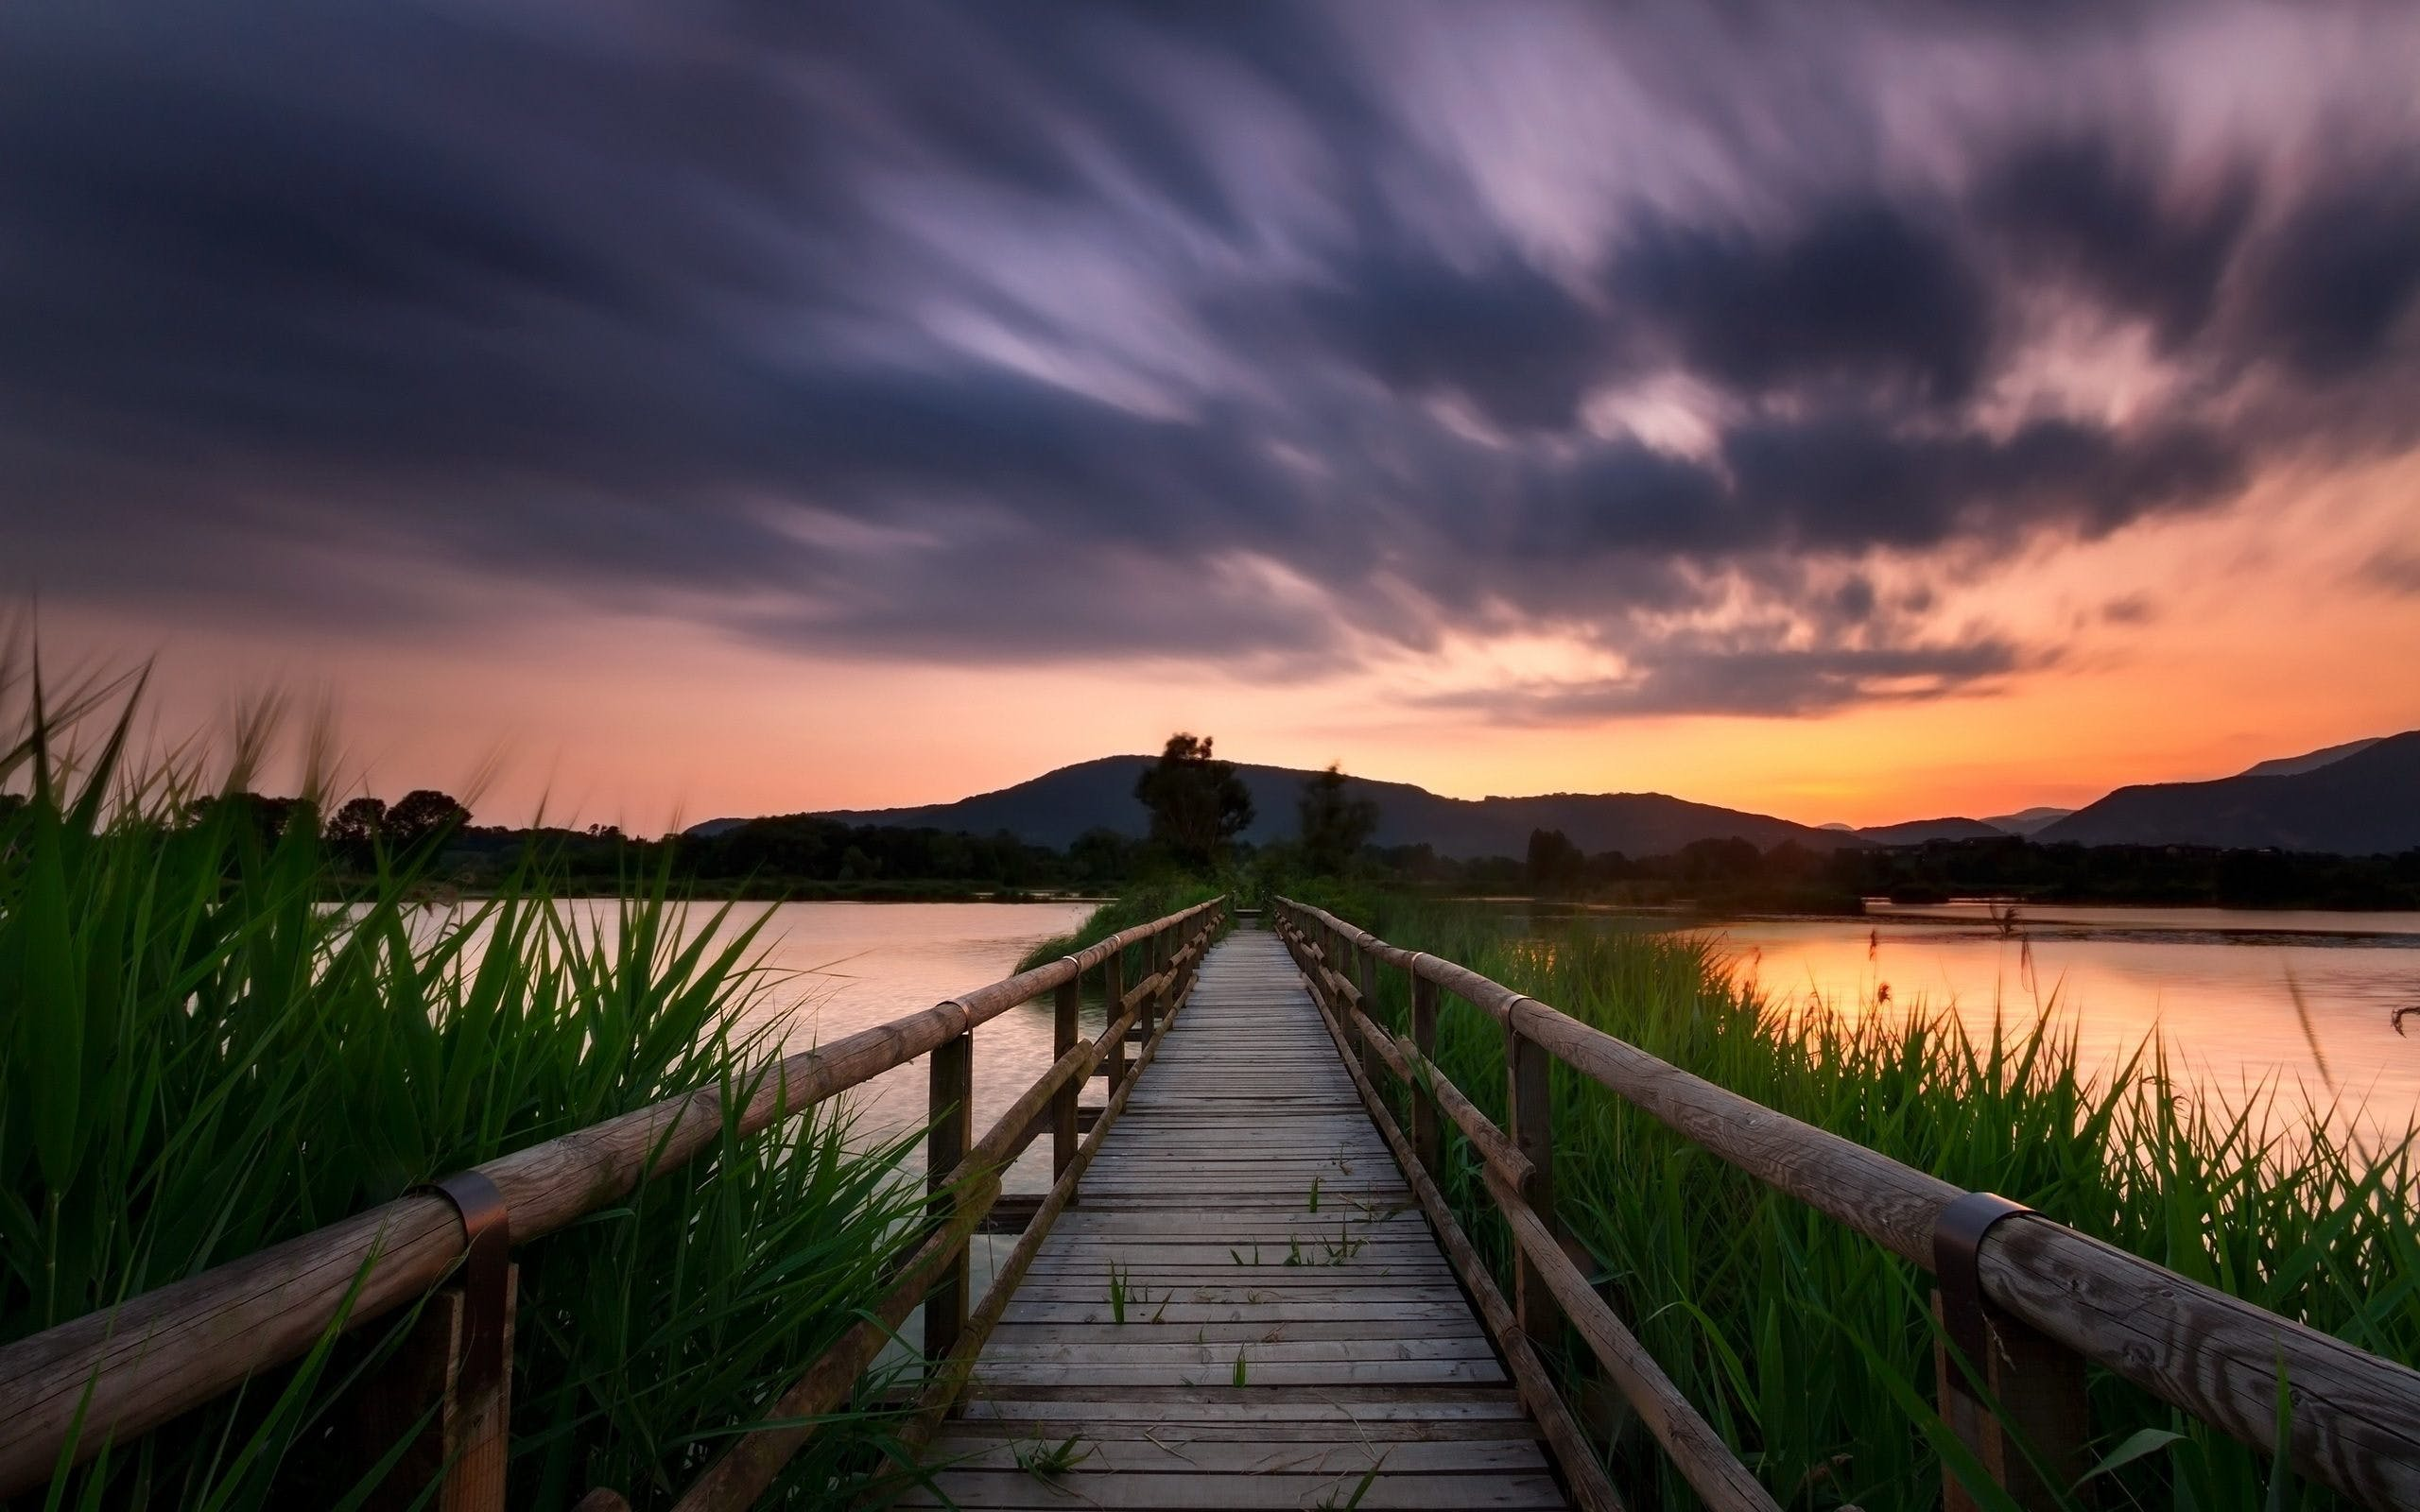 Timelapse Photography of Wooden Bridge Near Body of Water